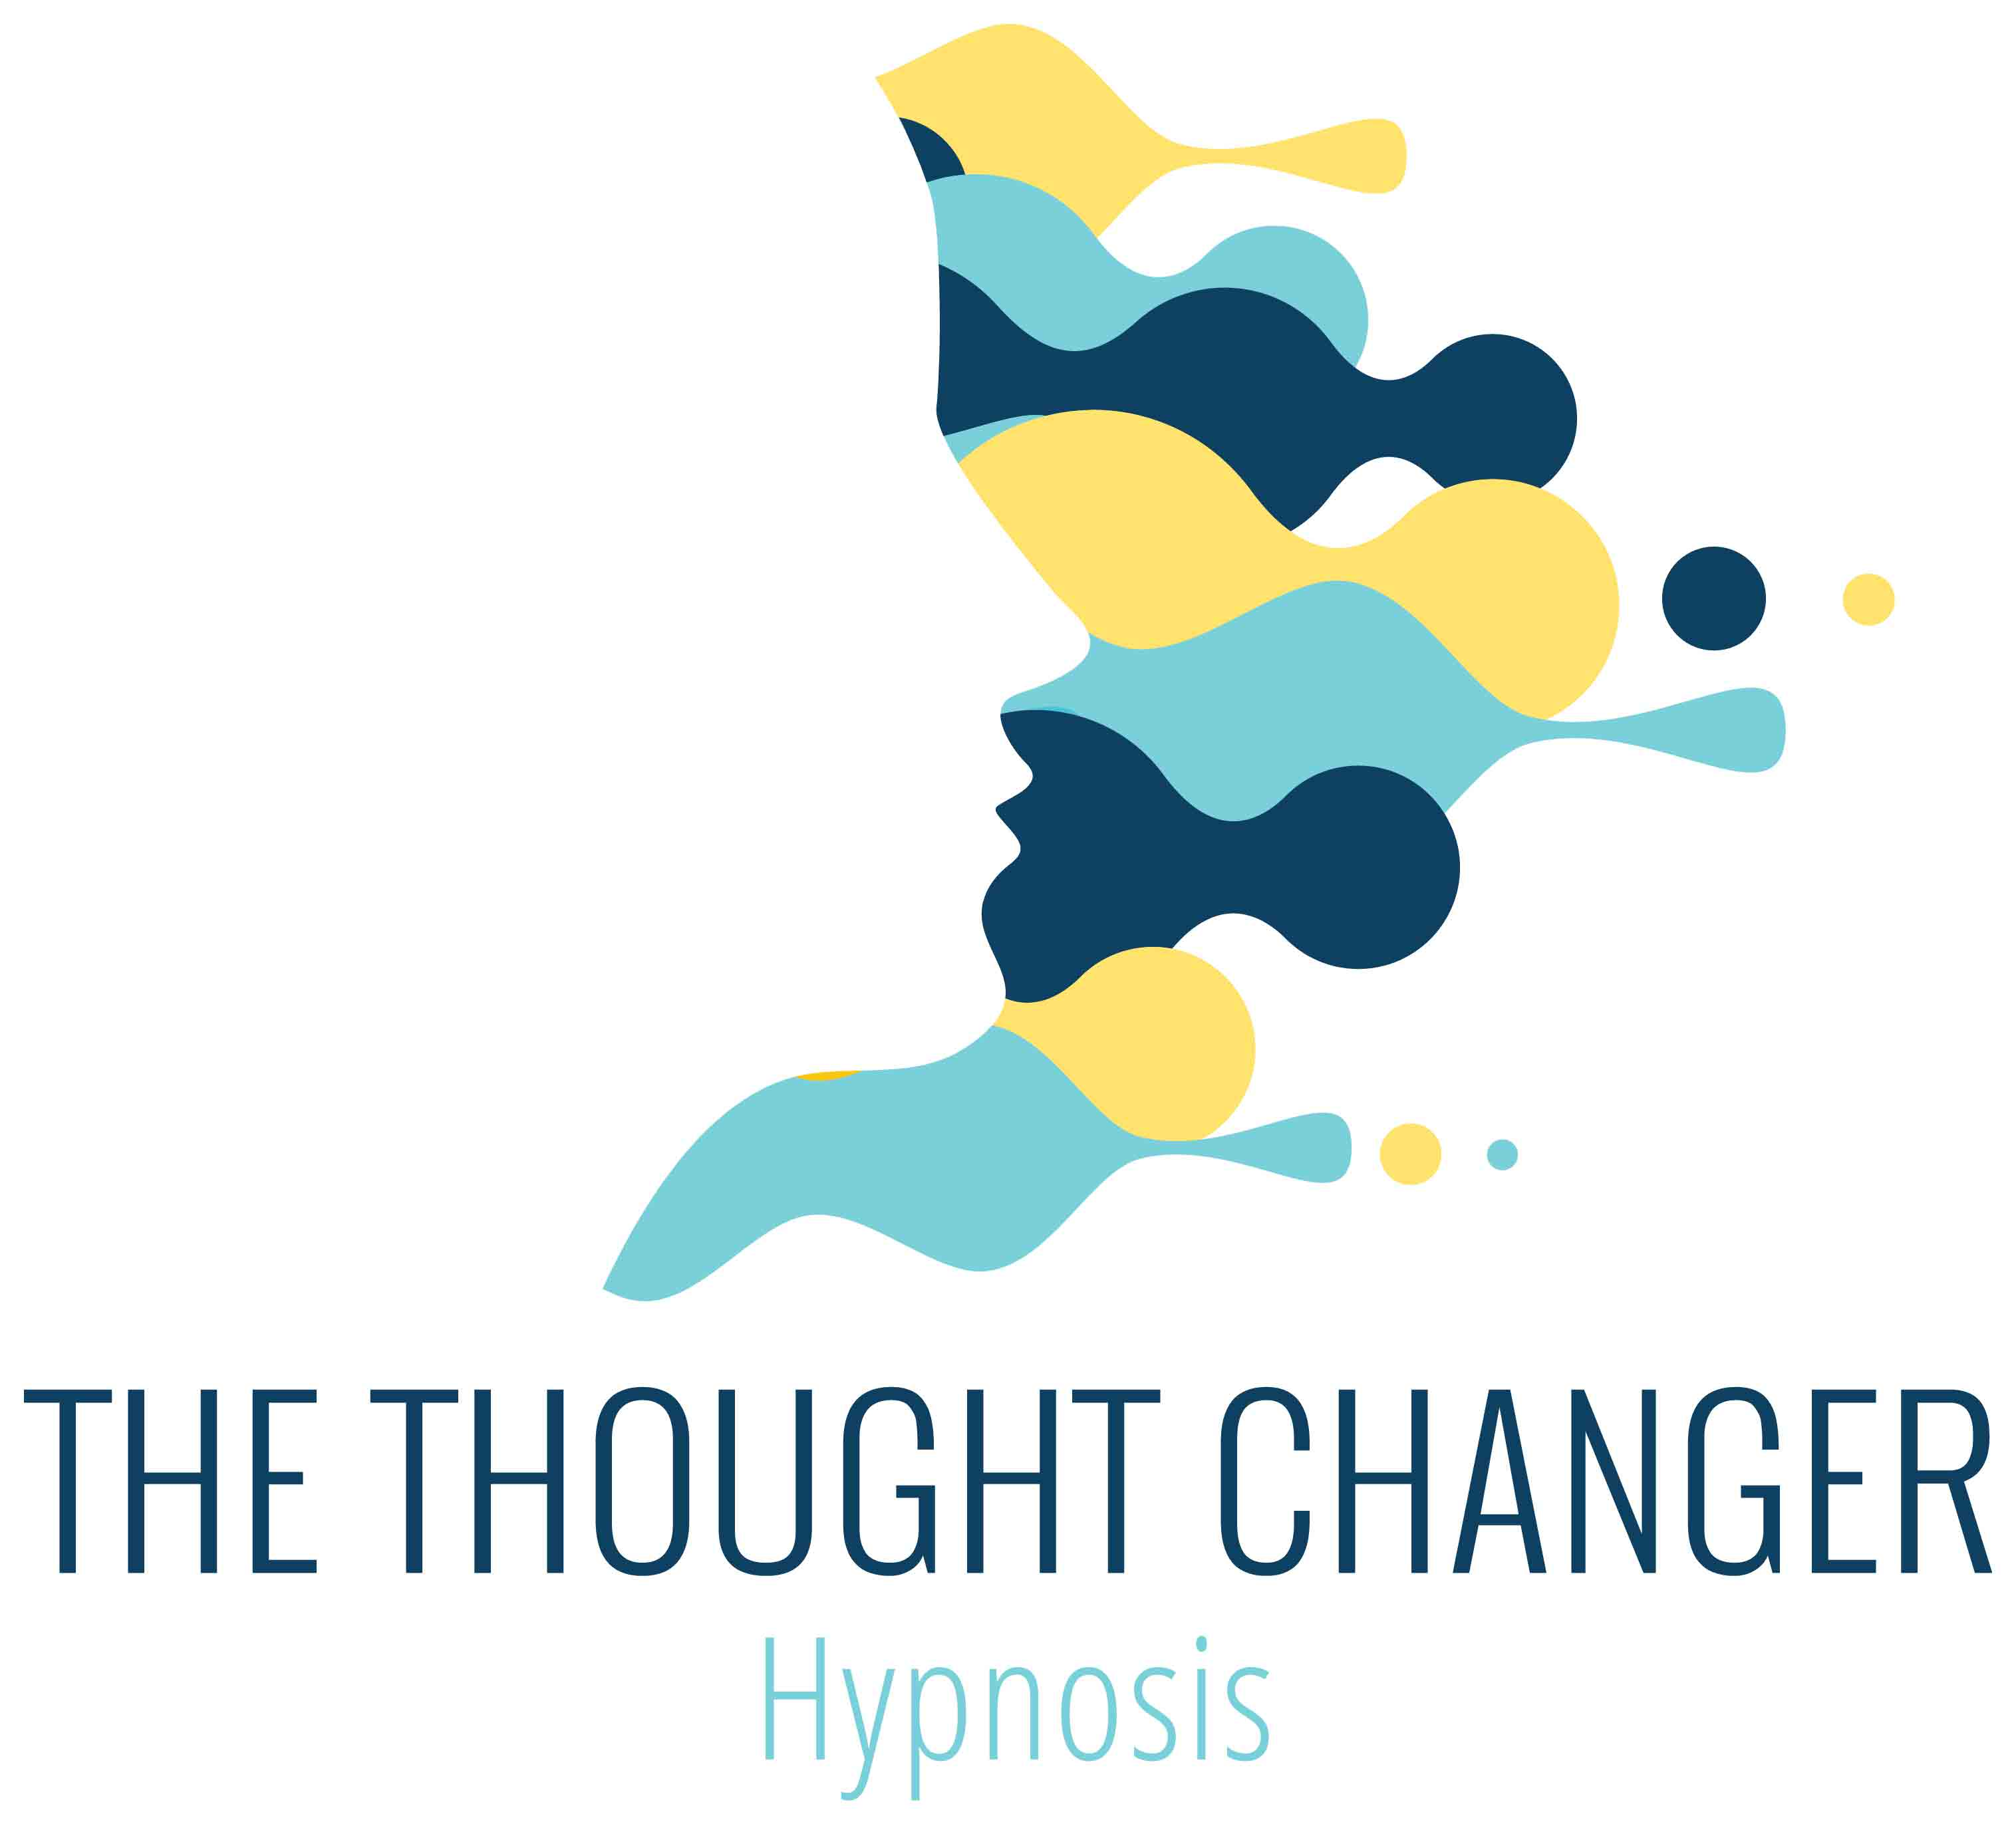 Addiction & Weight Loss | The Thought Changer Hypnosis New